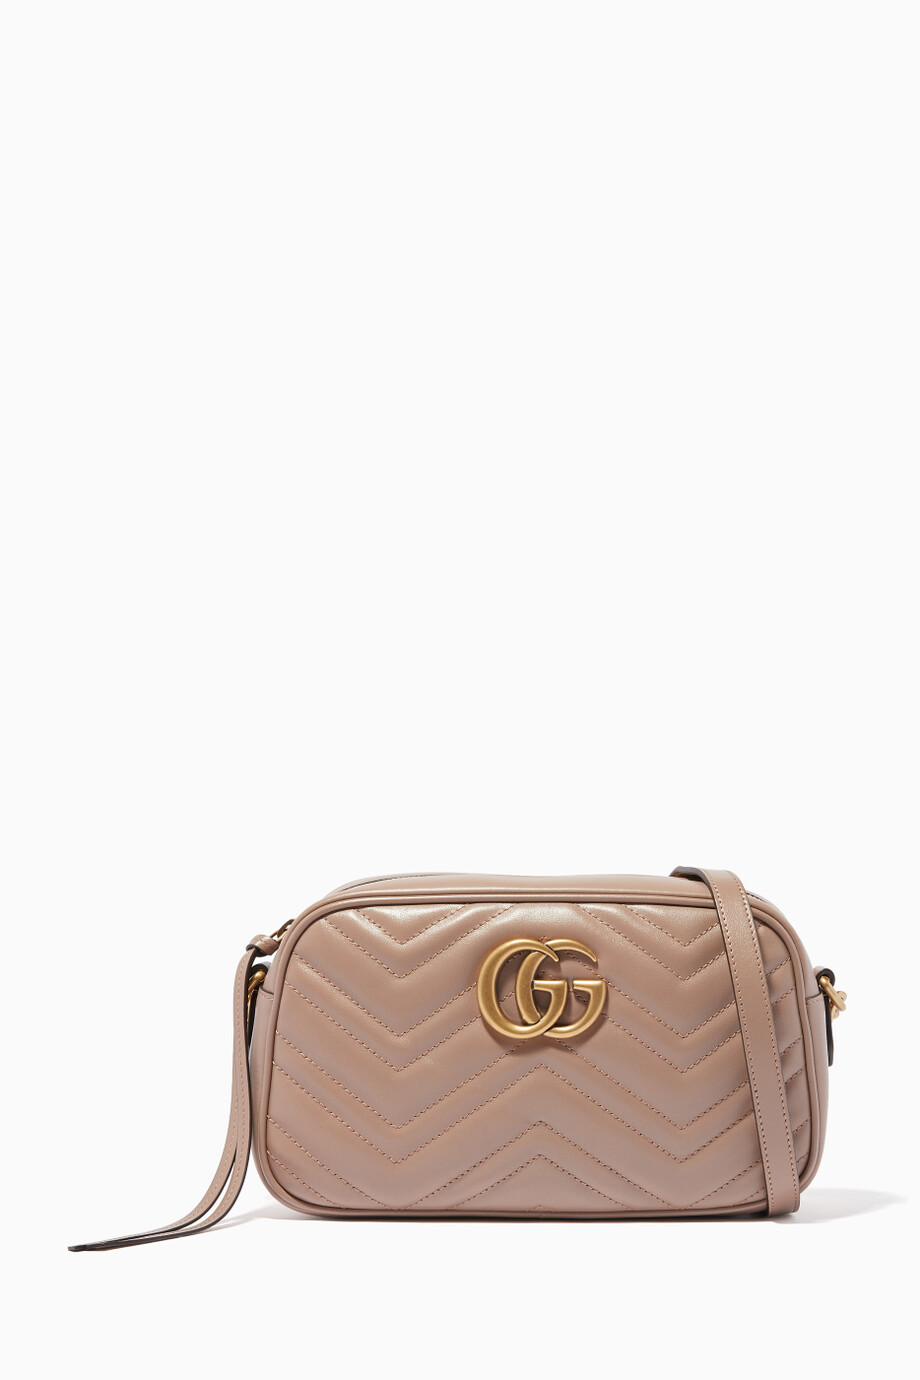 66dd2e3cef Shop Gucci Neutral Beige Leather Small GG Marmont Shoulder Bag ...